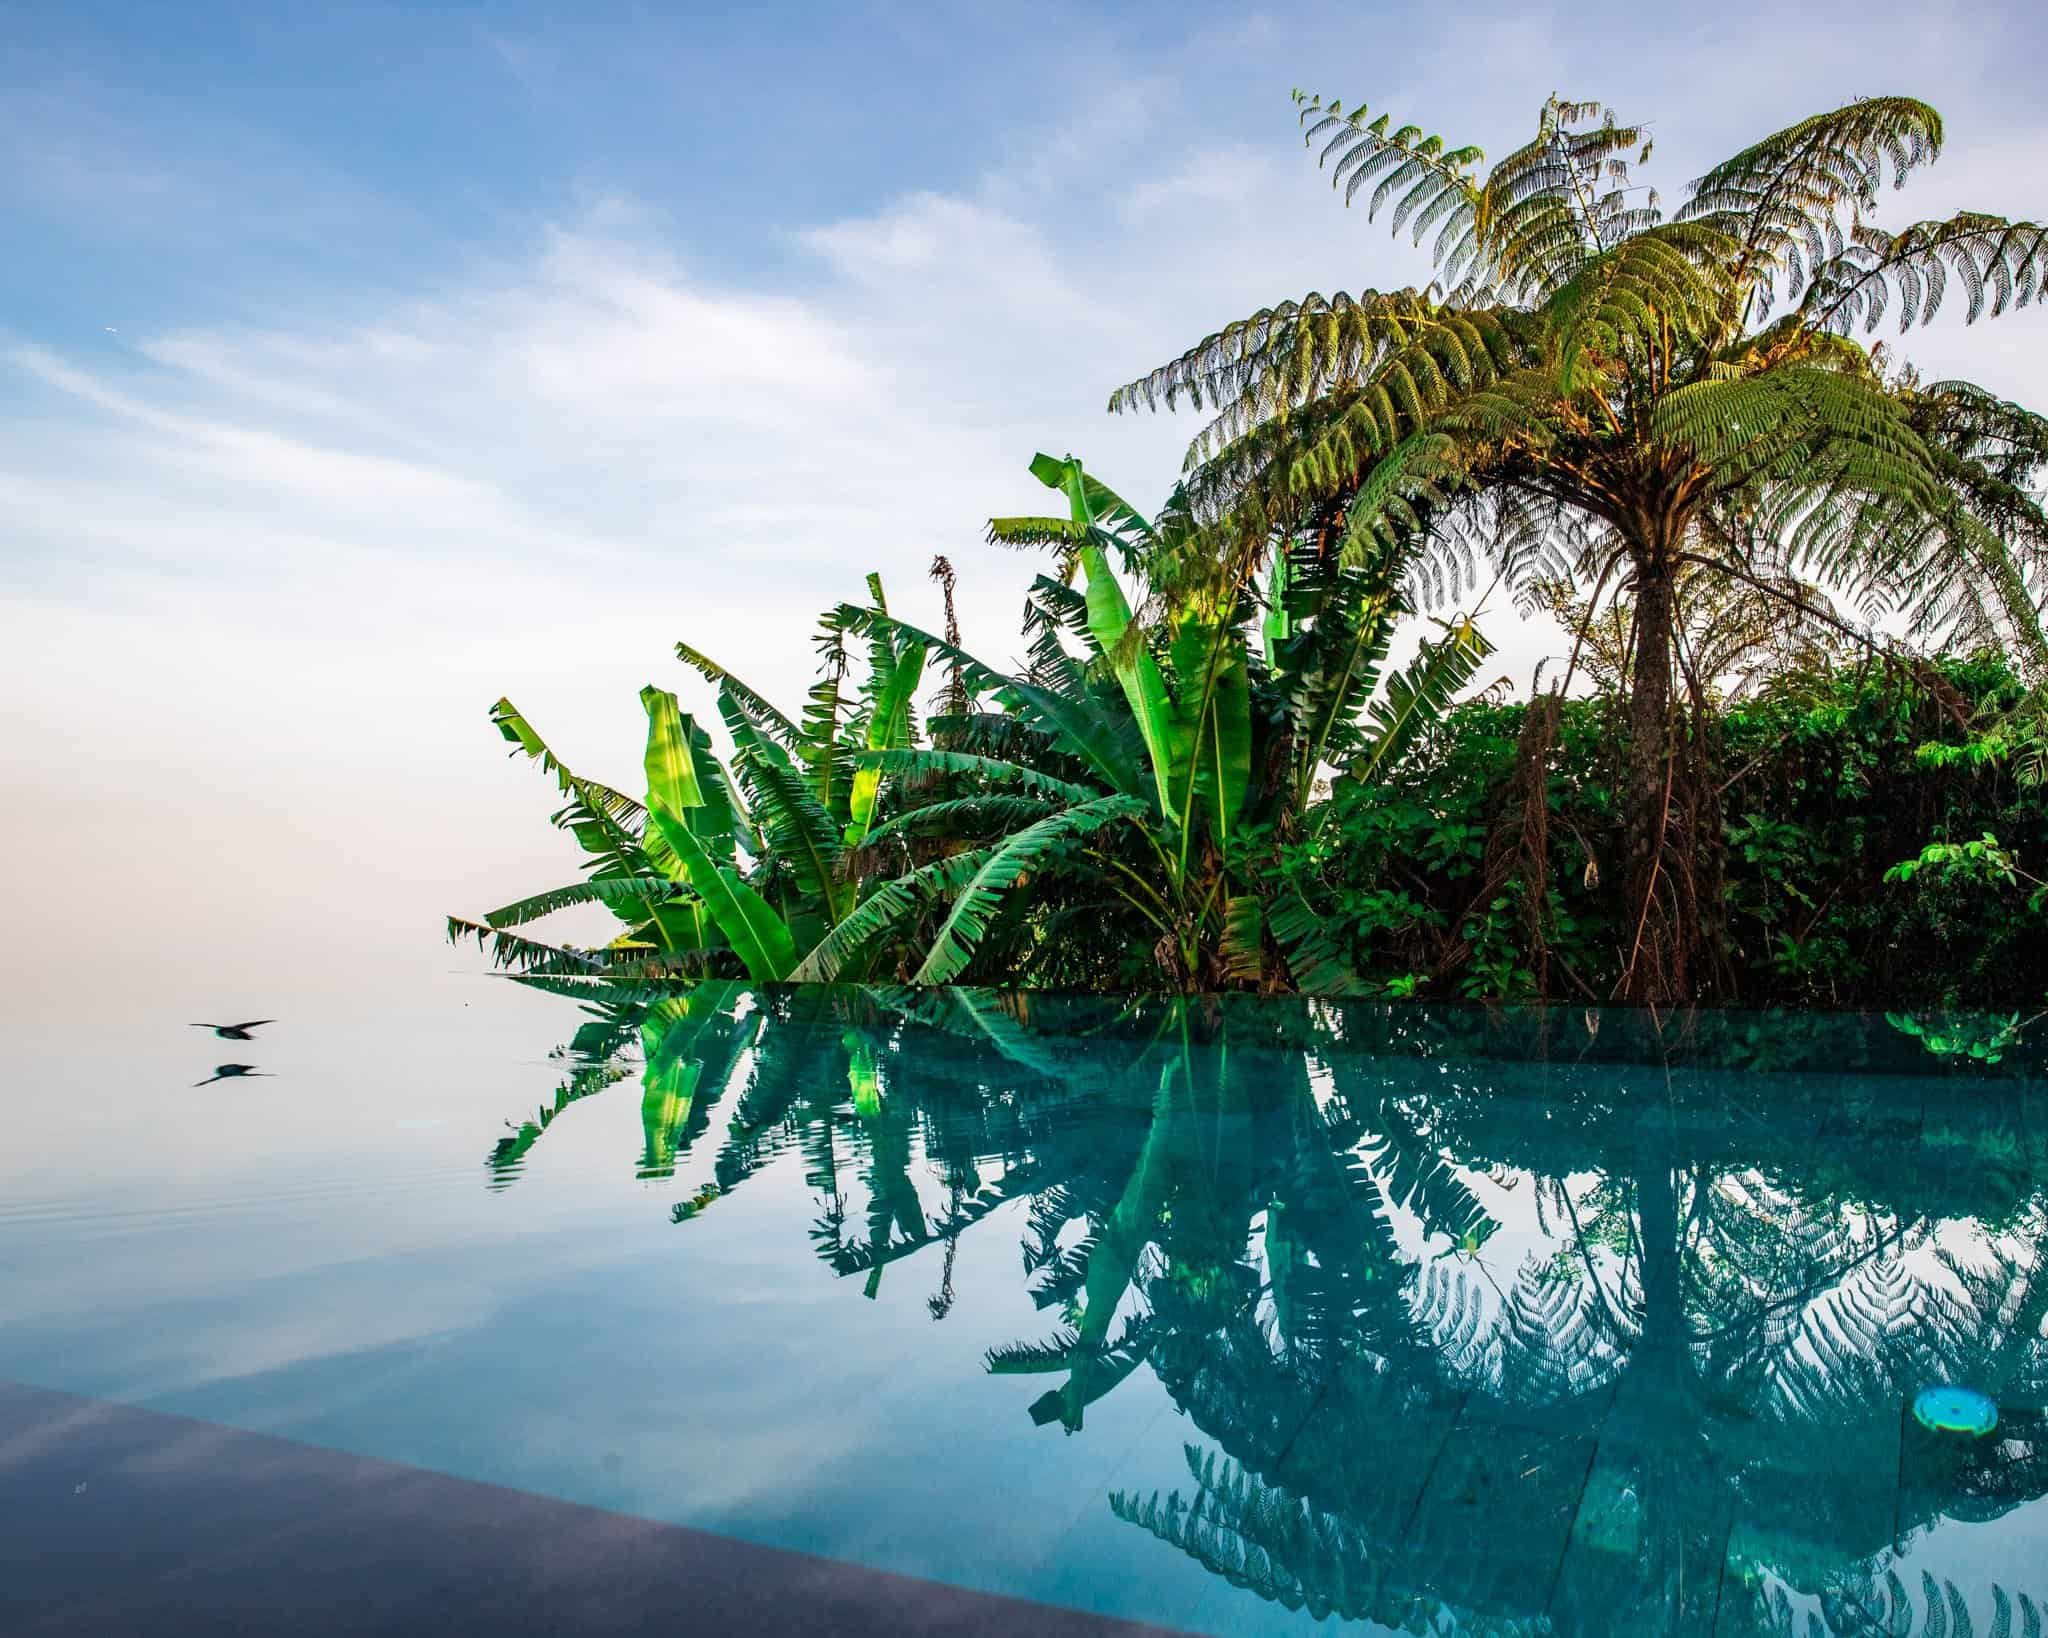 Pool View at Munduk Moding Plantation Bali - The Next Trip